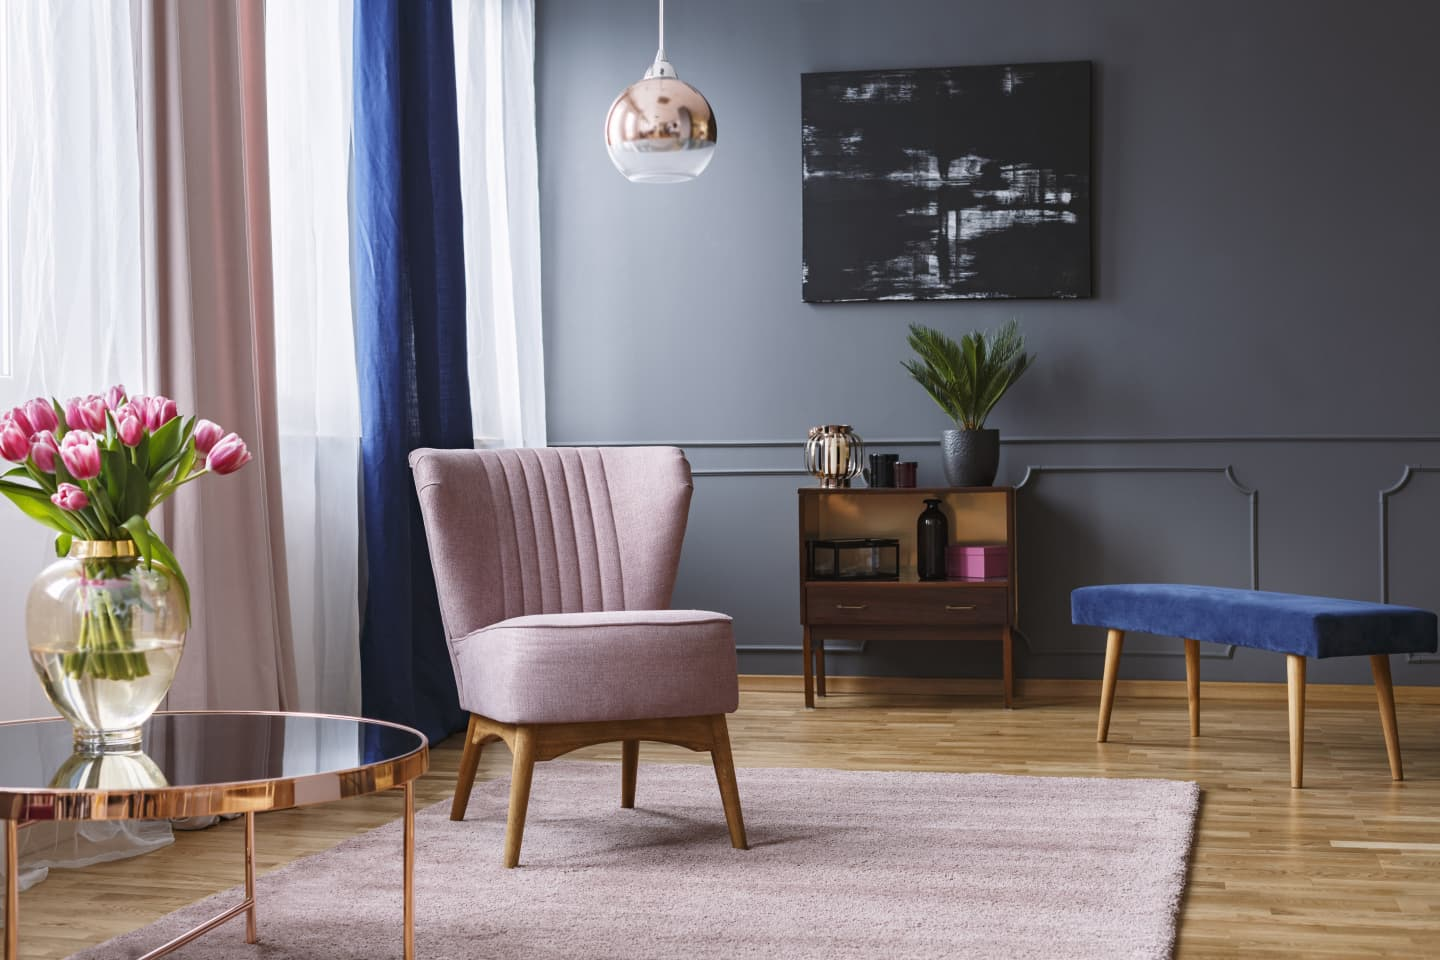 office-like sitting room with blue and grey curtains